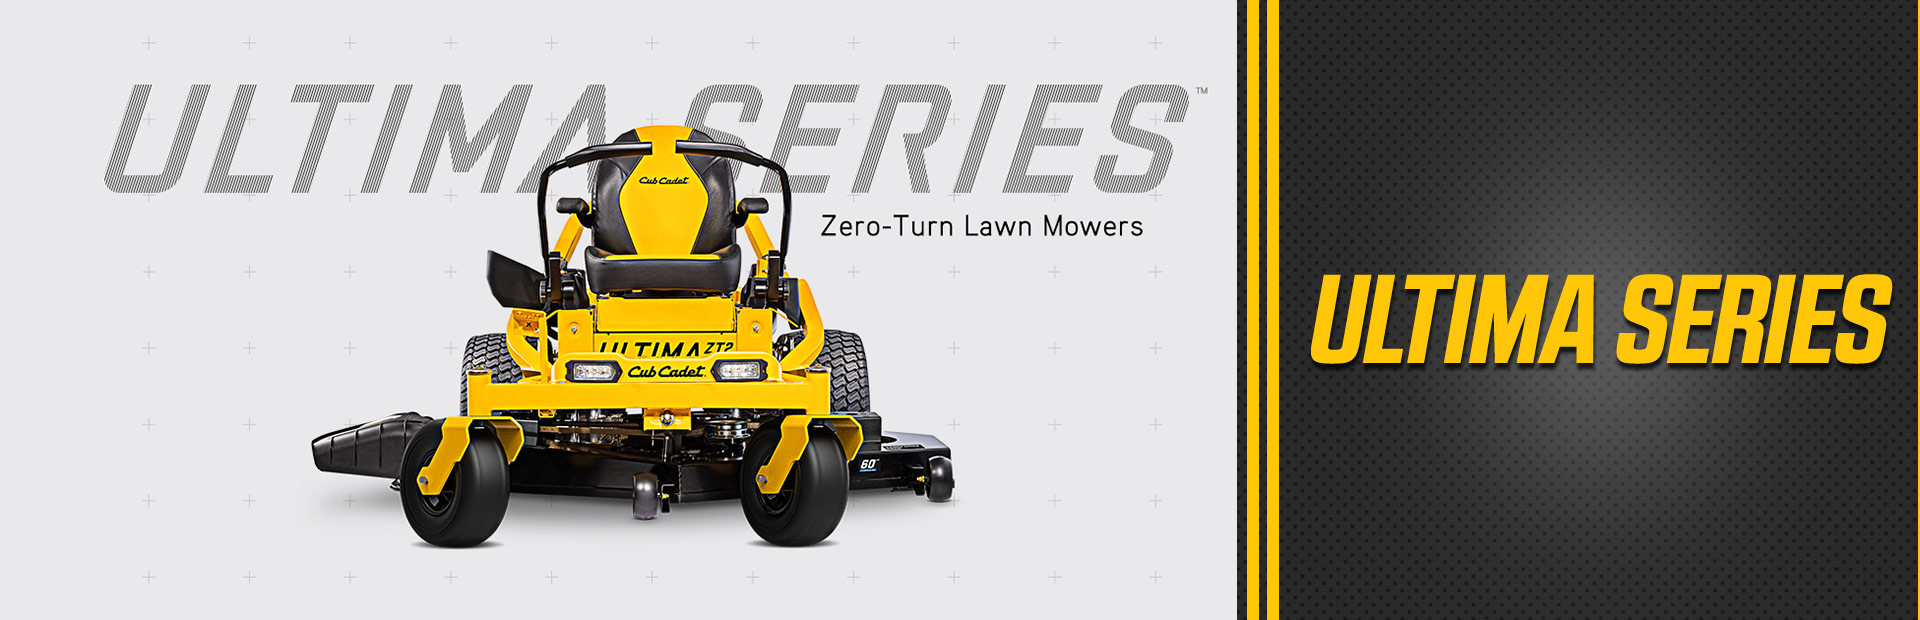 Ultima series Zero-Turn lawn mowers